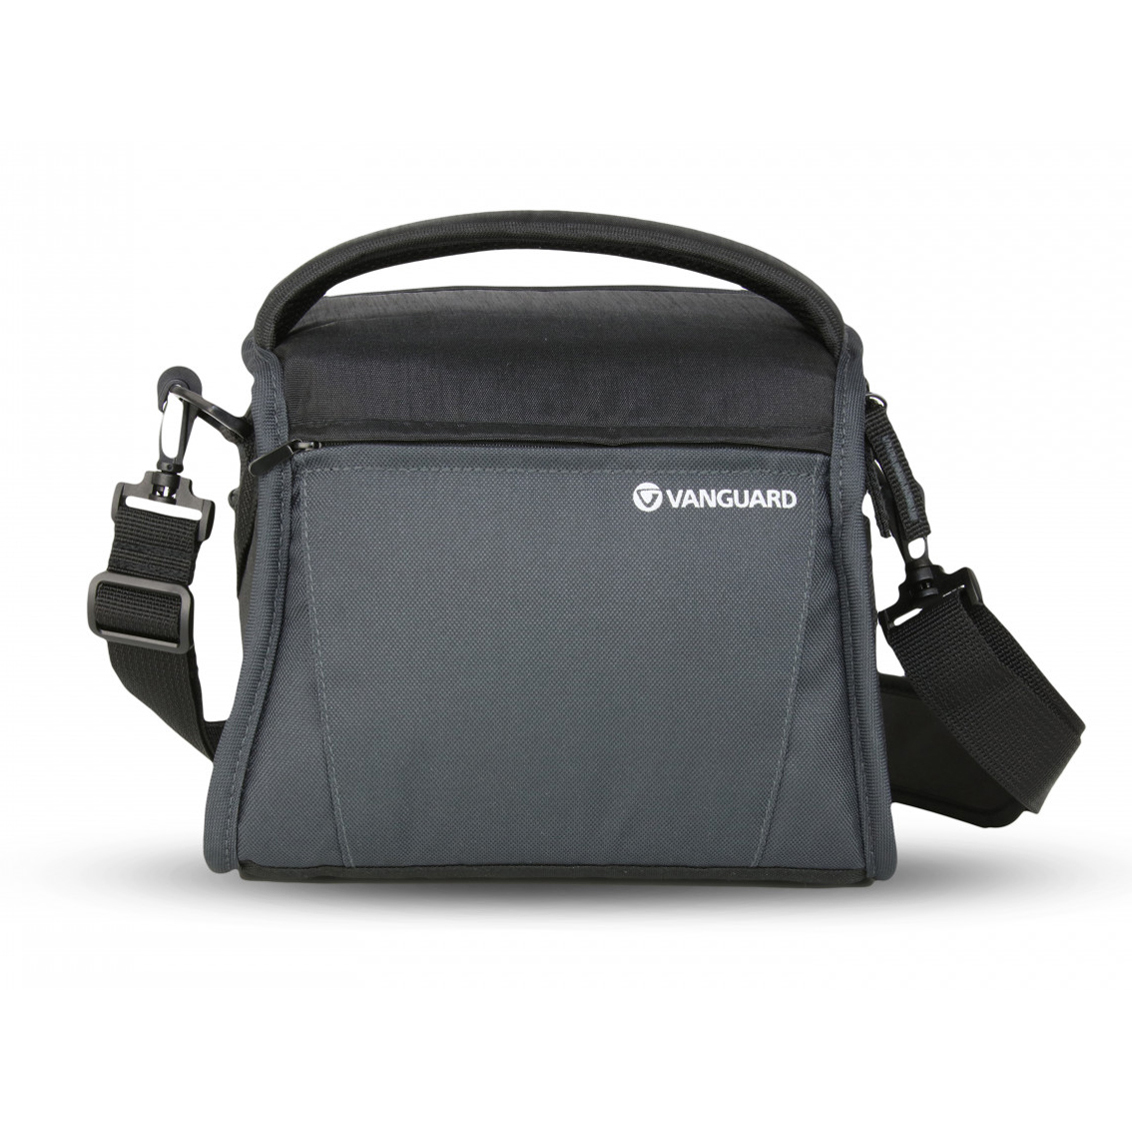 Vanguard VESTA Start 21 Shoulder Bag